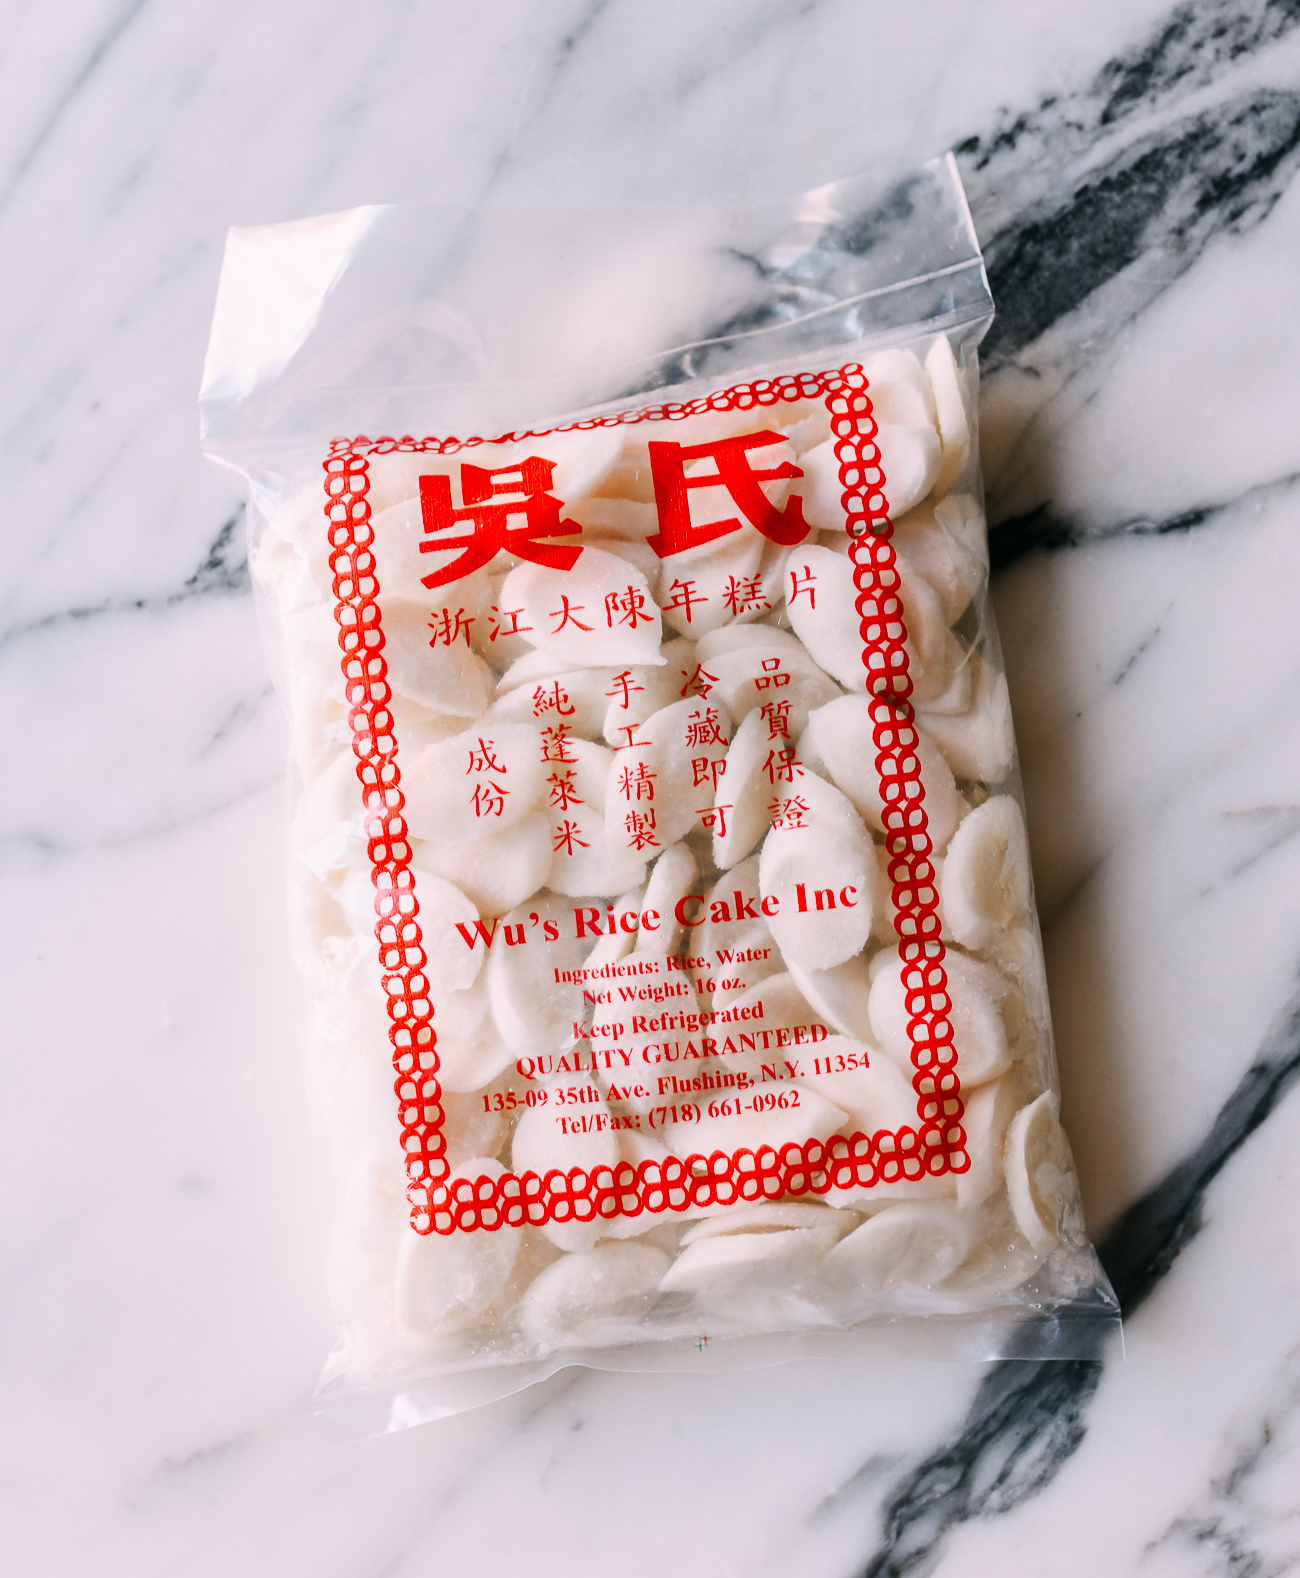 Package of Chinese rice cakes